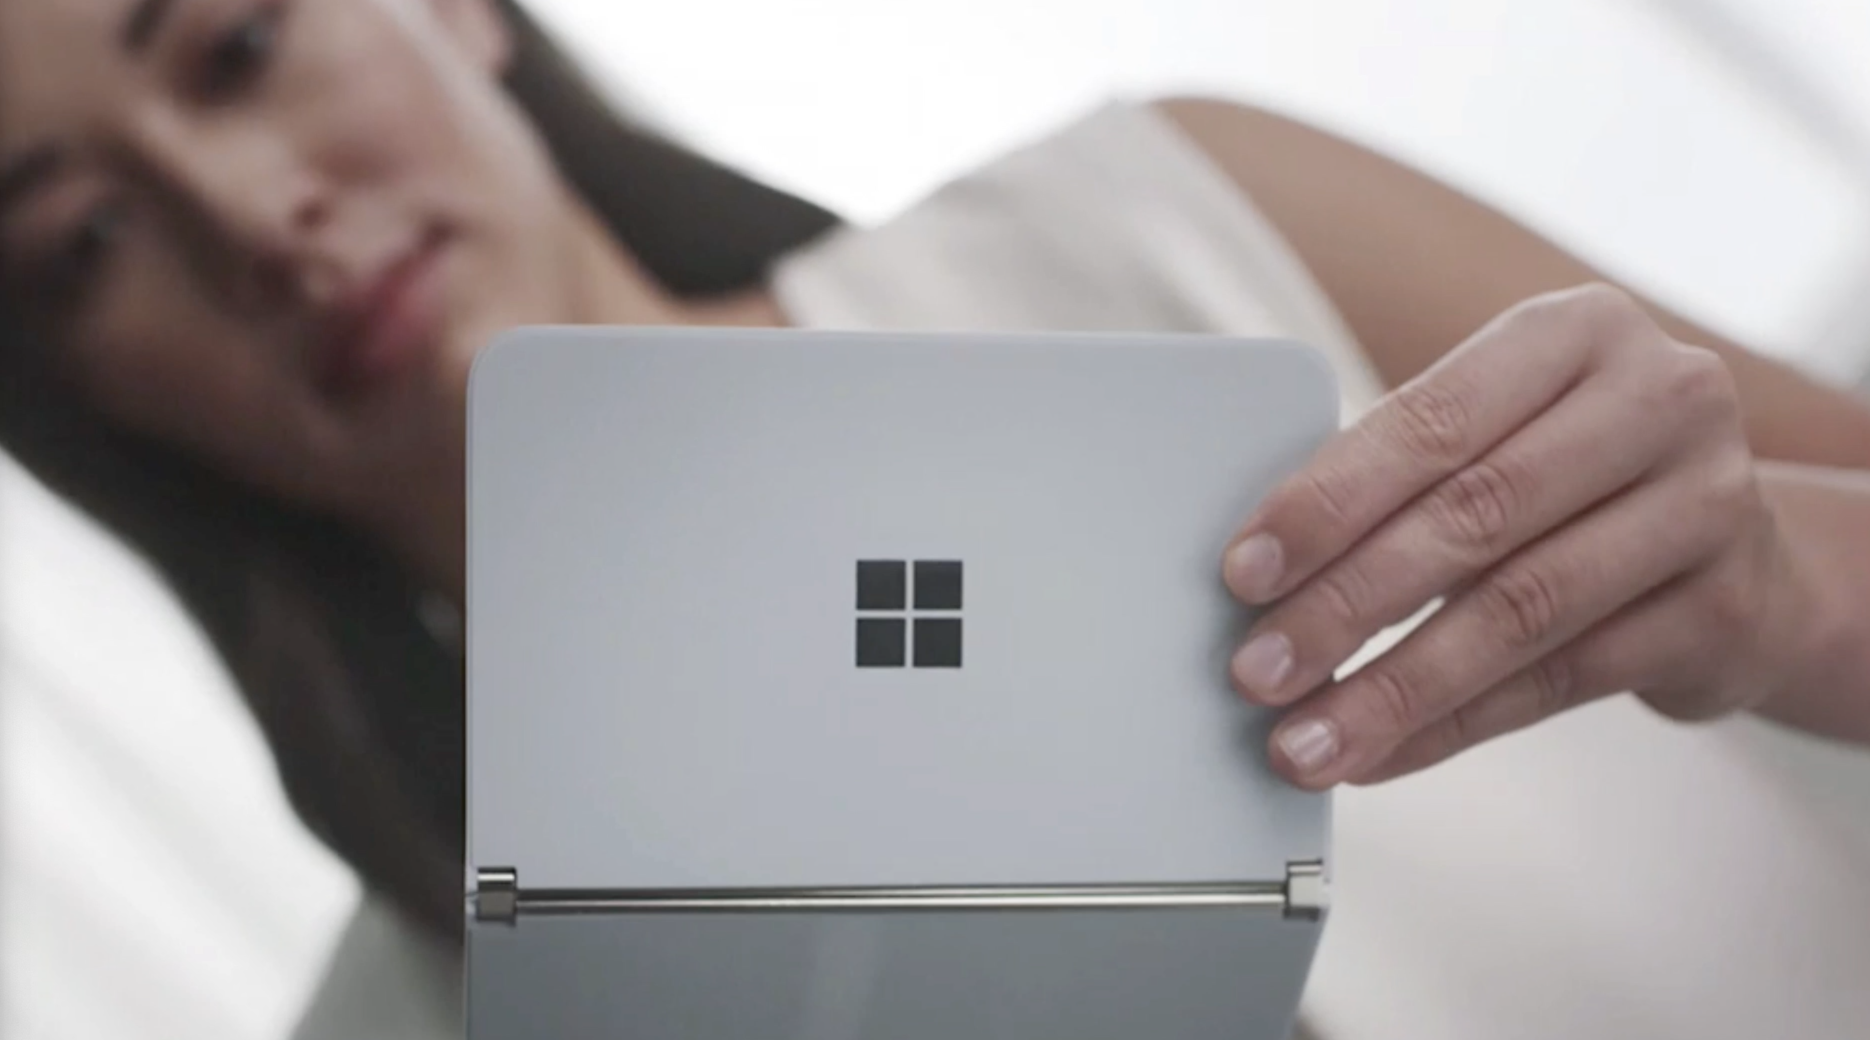 The new Surface Duo will combine the best of Windows with the best of Android.